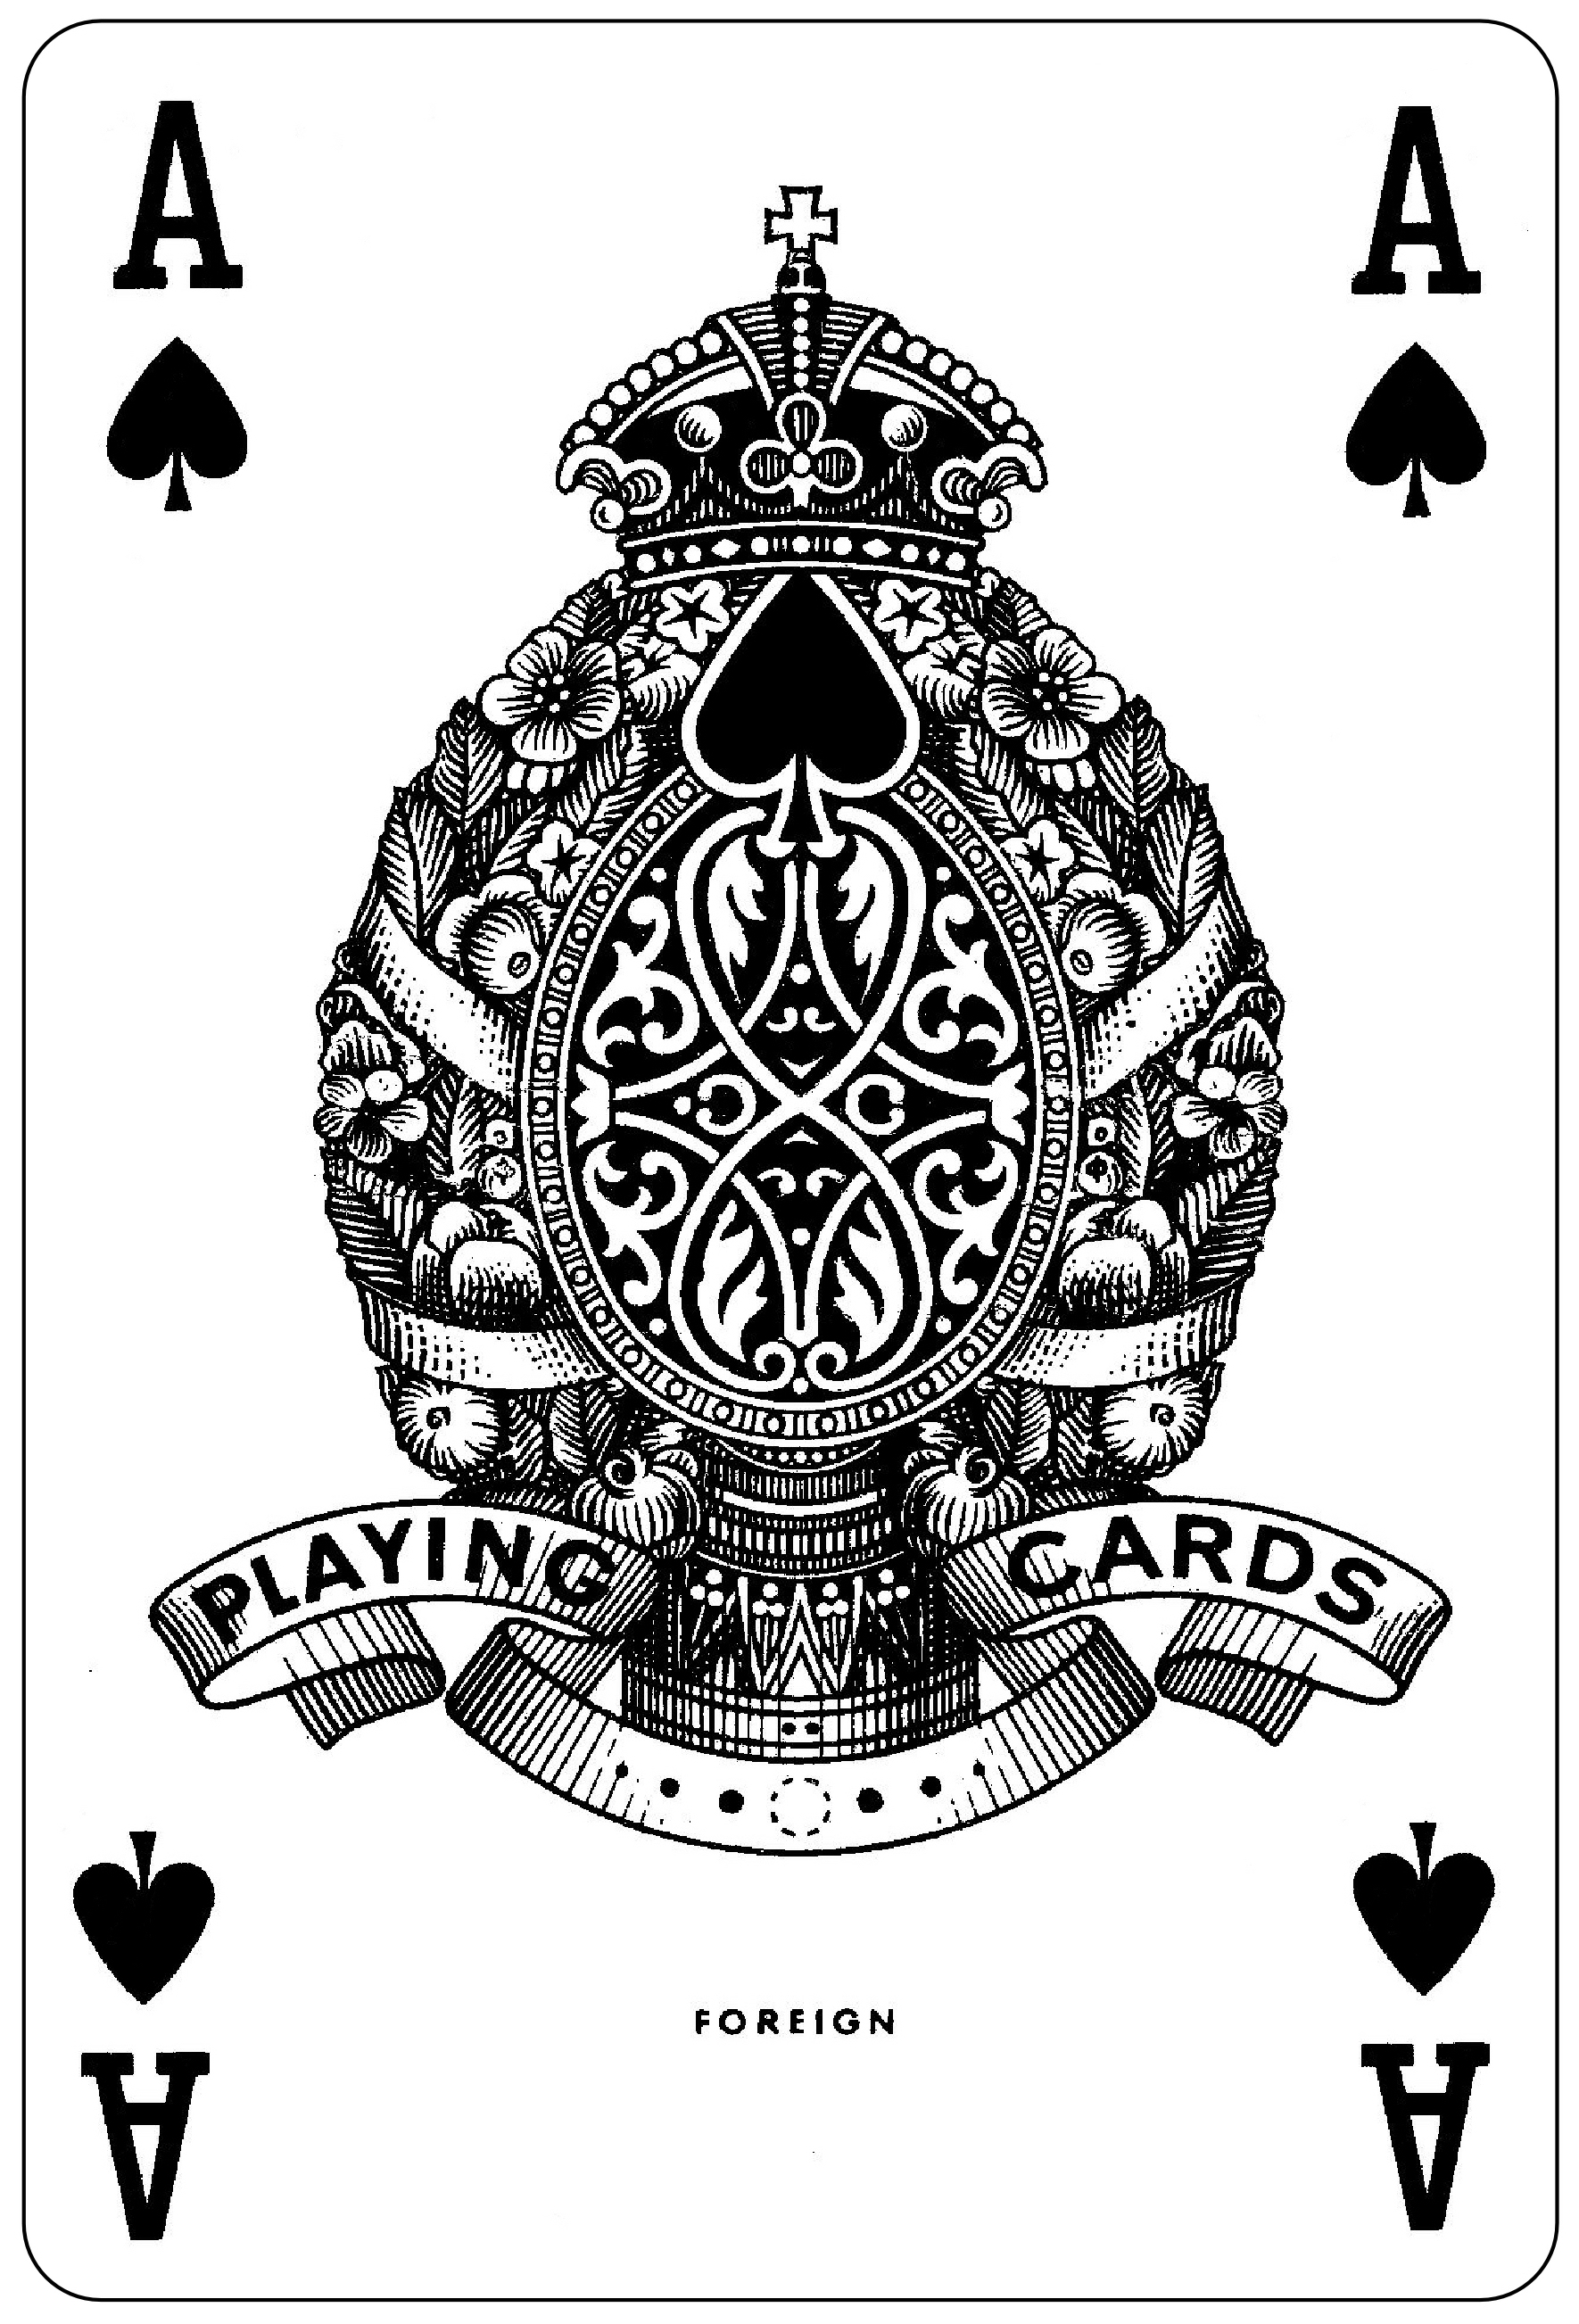 1000 images about ace of spades on pinterest ace of spades playing cards and skulls. Black Bedroom Furniture Sets. Home Design Ideas